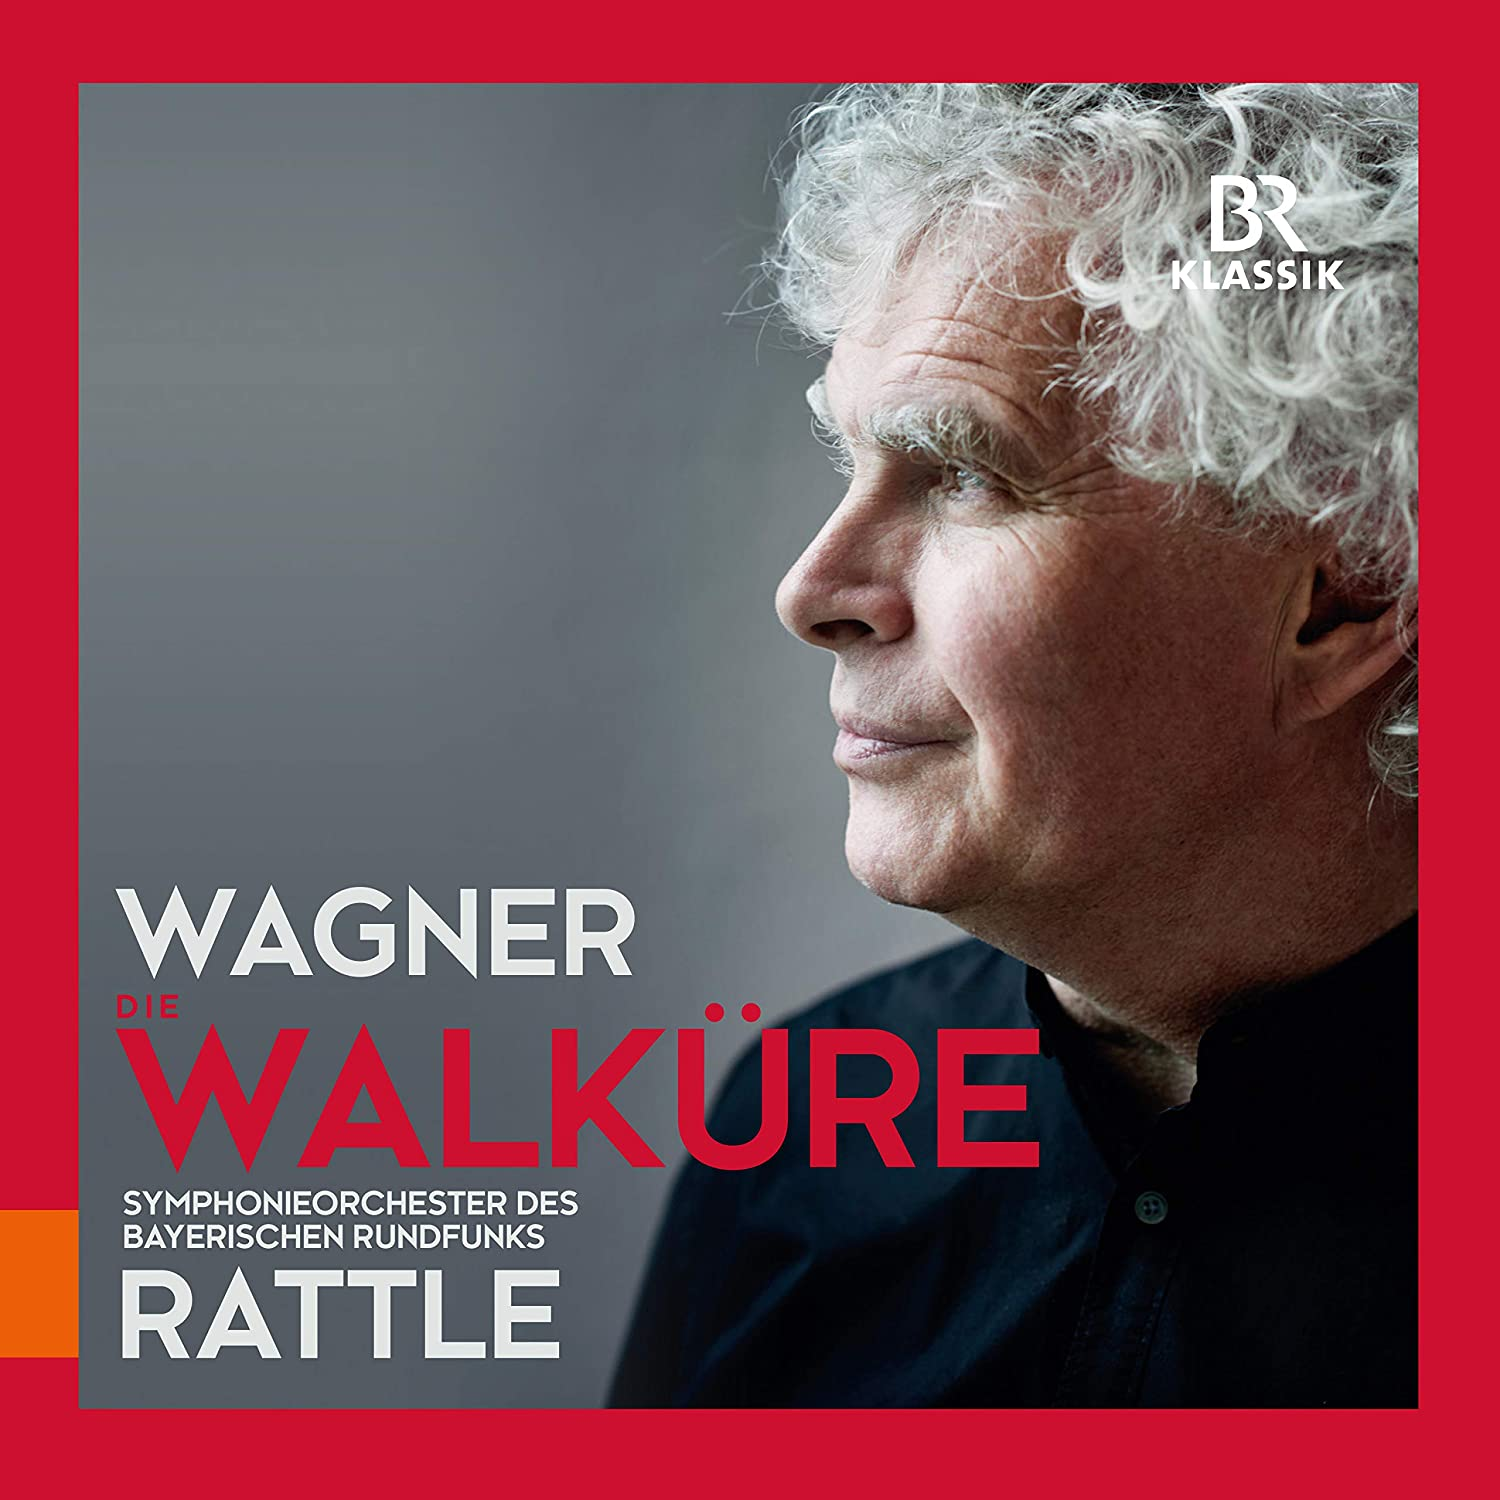 Review of WAGNER Die Walküre (Rattle)